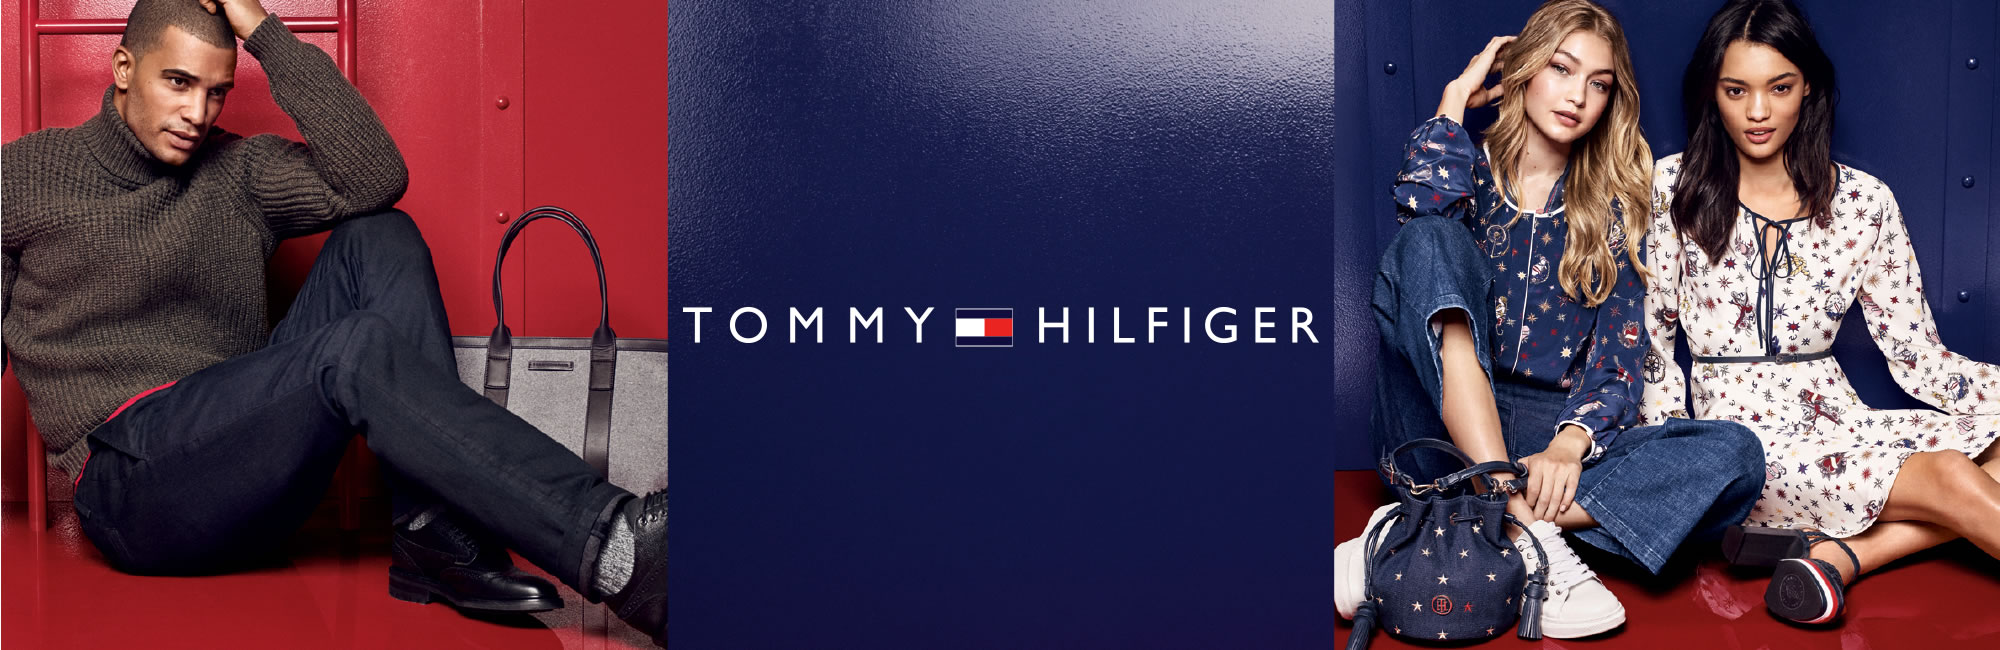 tommy hilfiger taschen geldb rsen trolleys. Black Bedroom Furniture Sets. Home Design Ideas